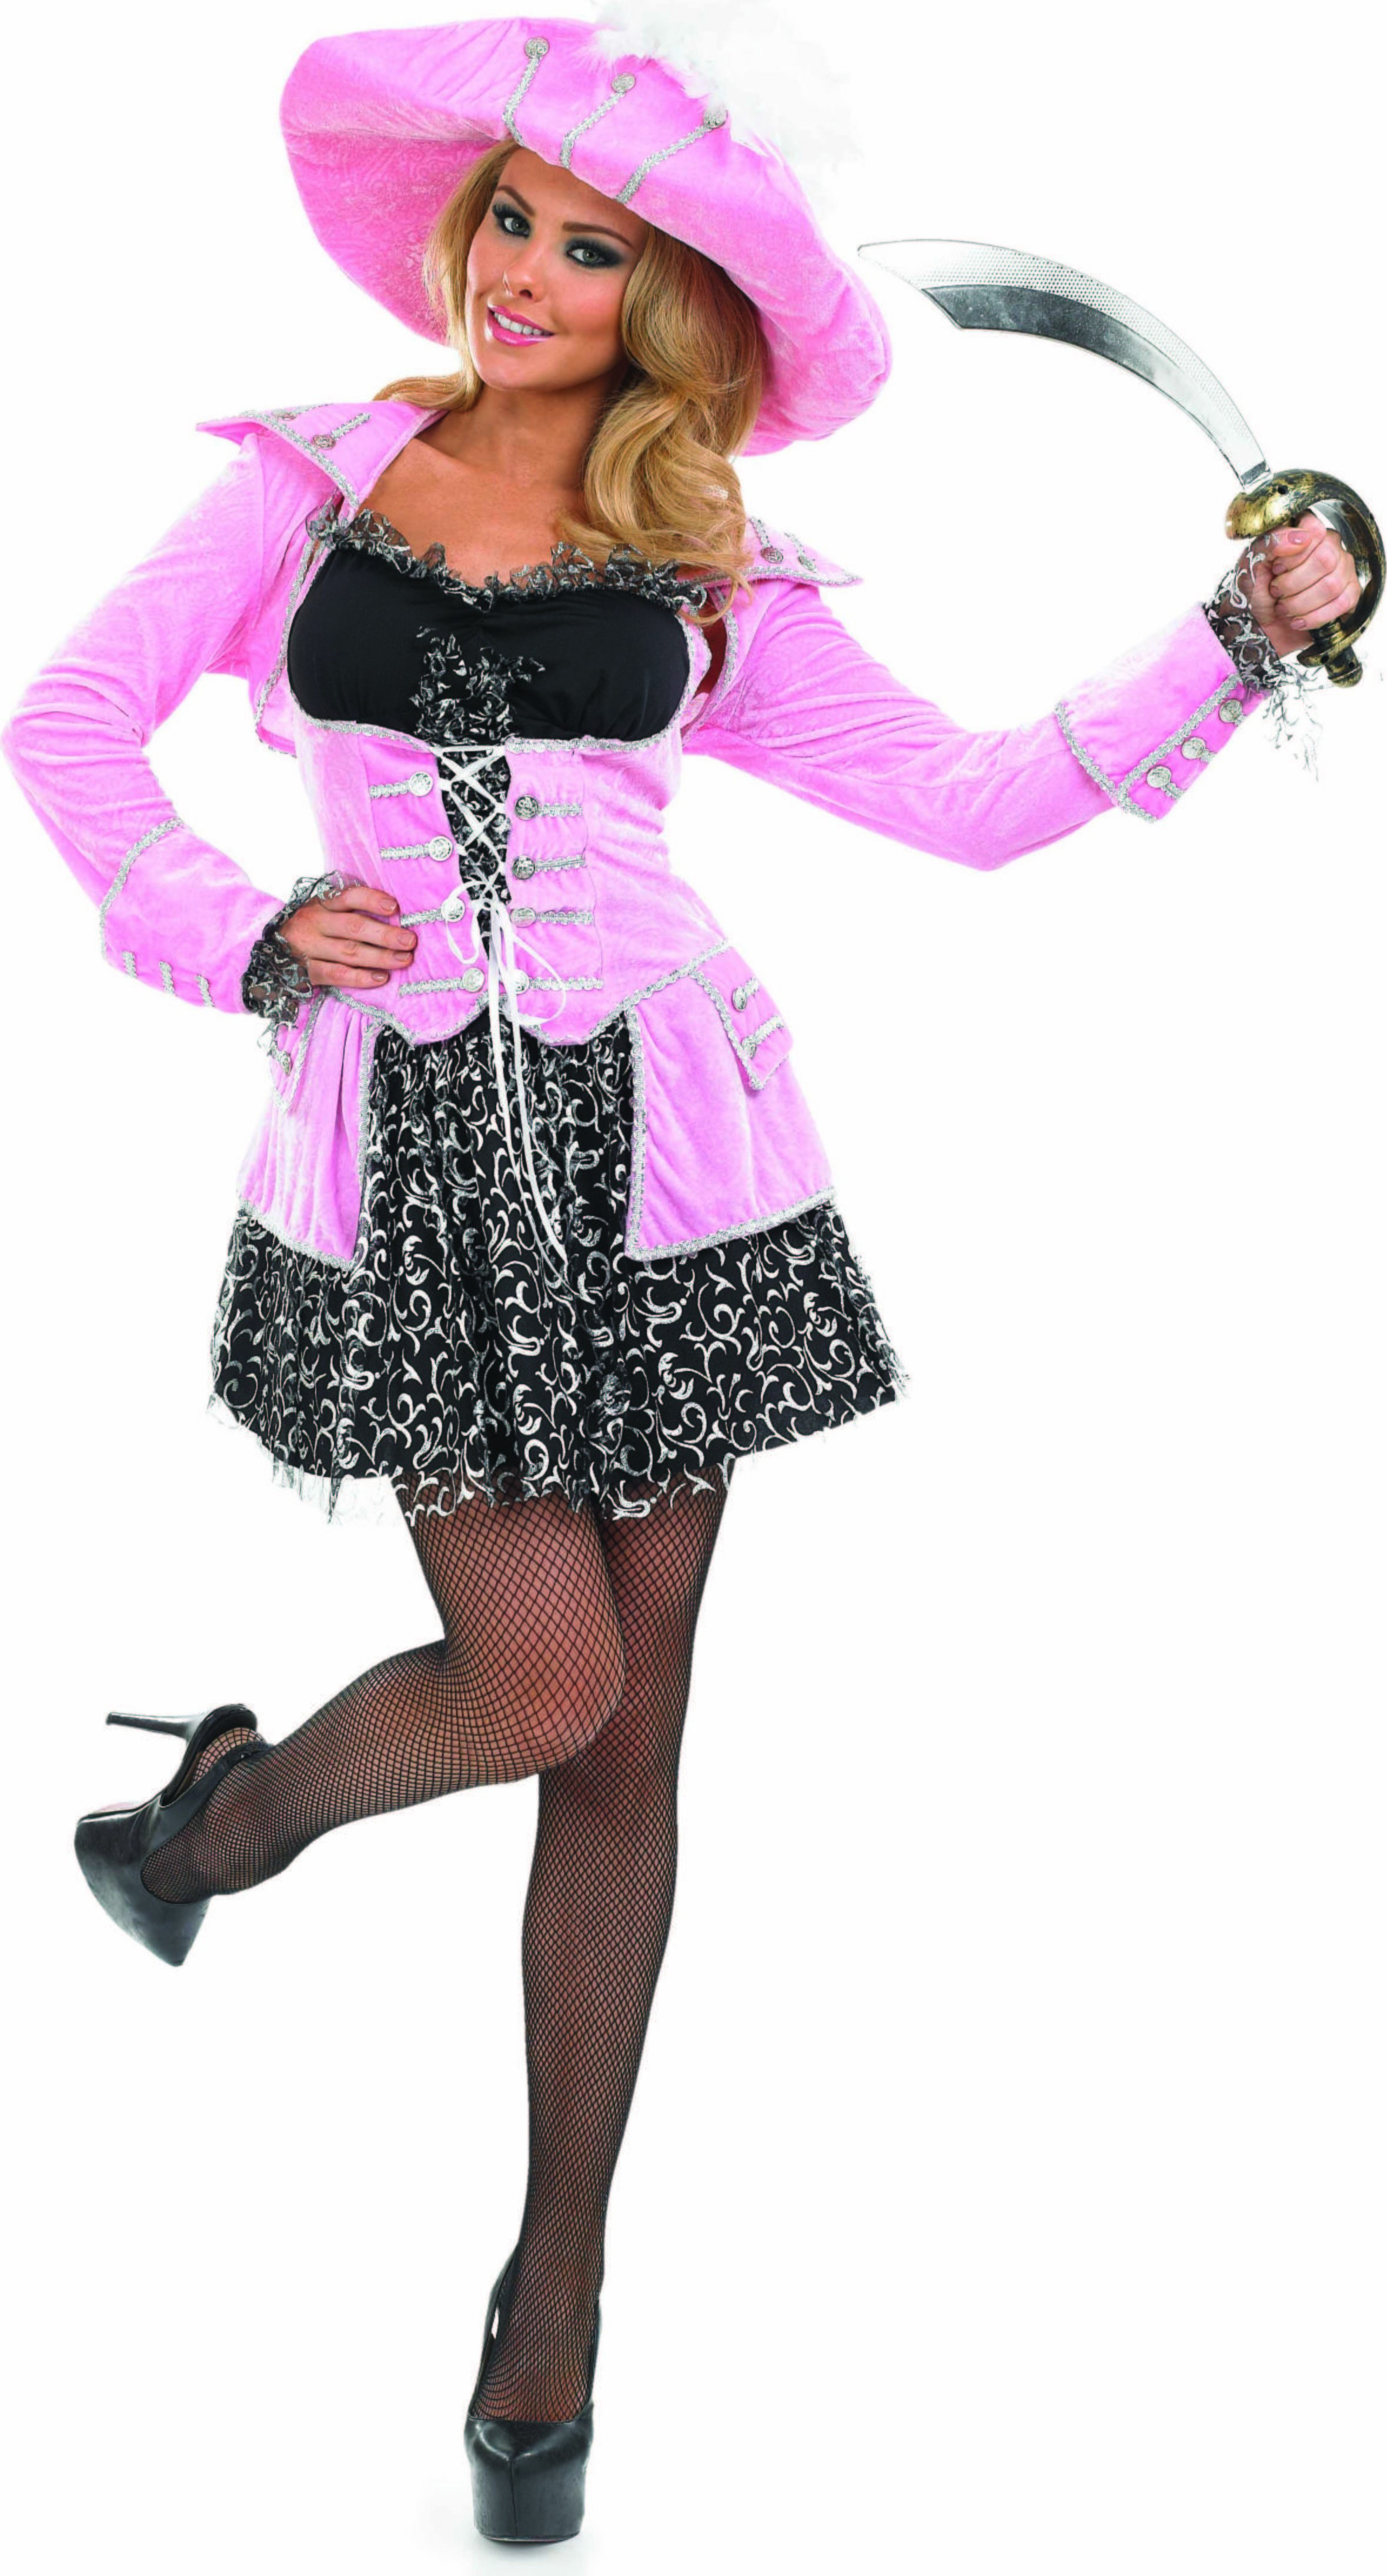 Ladies Pink Glitzy Pirate Pirates Outfit - (Pink)